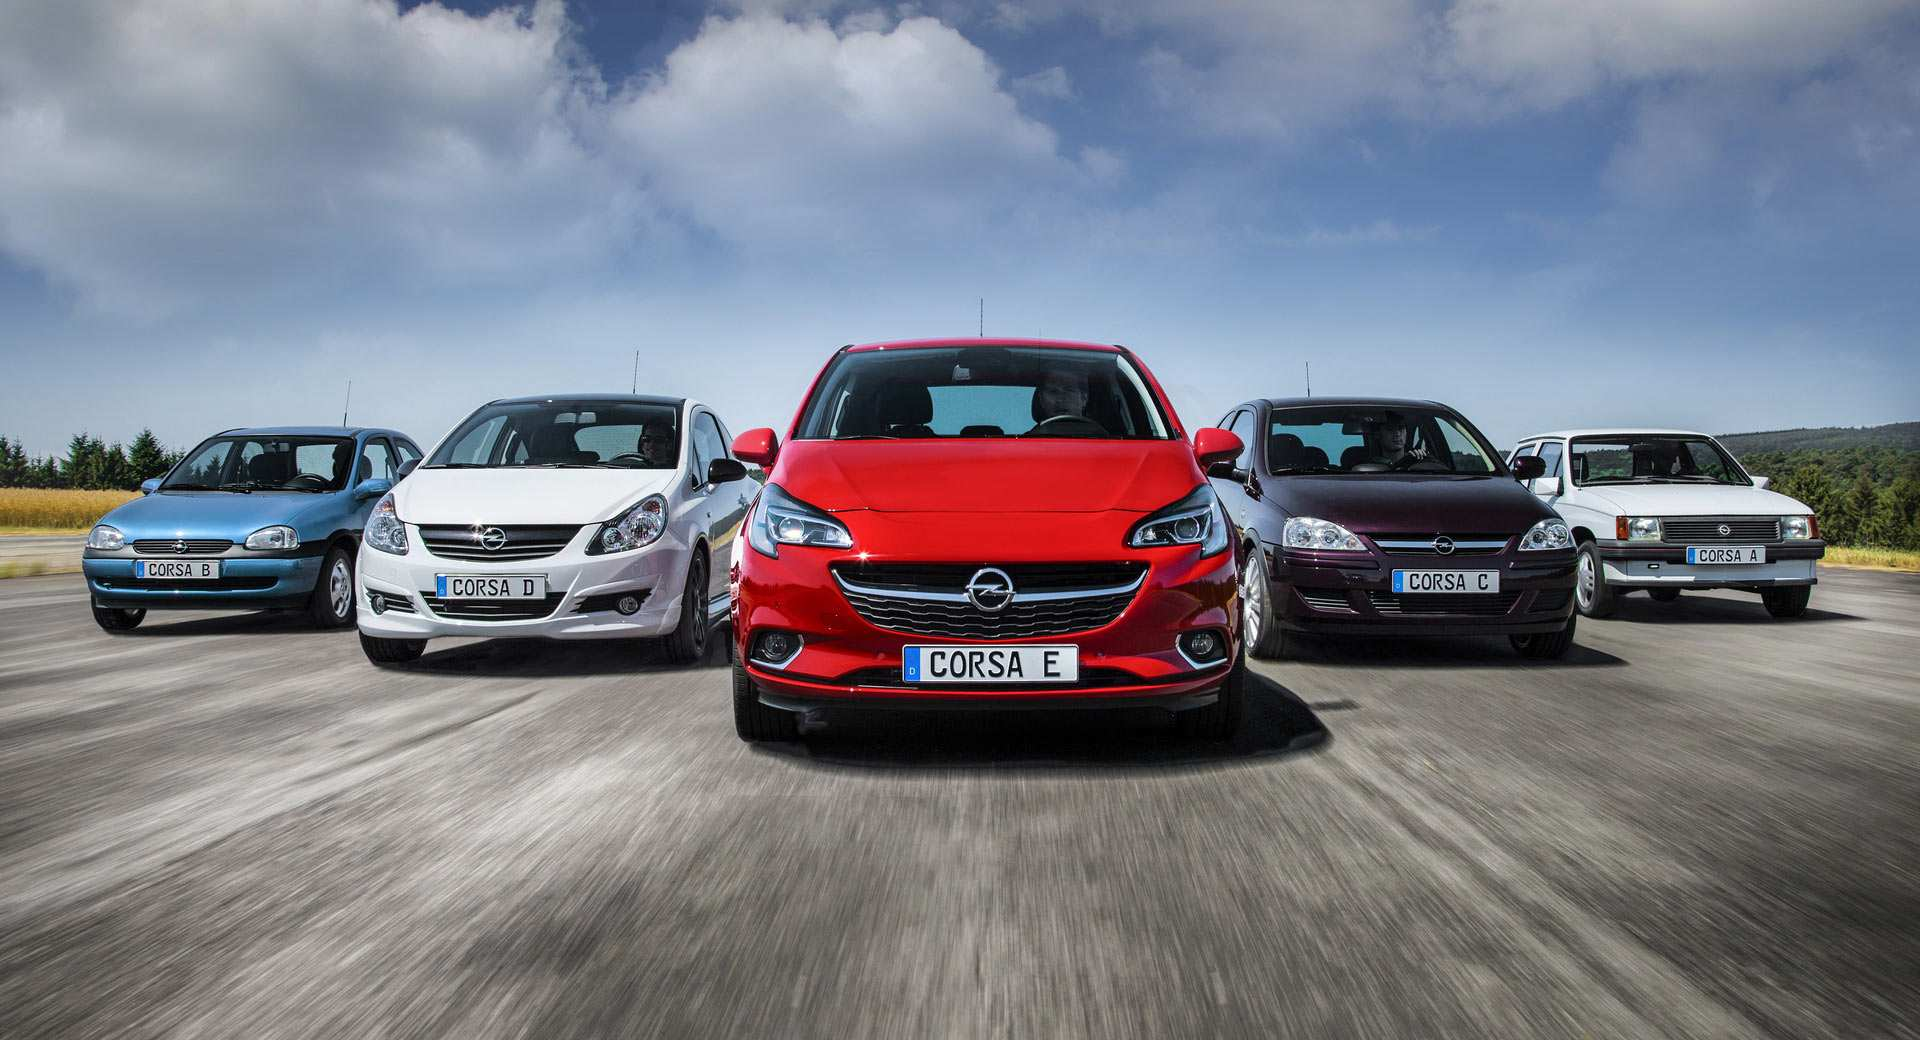 56 New Opel Will Launch Corsa Ev In 2020 Price and Review by Opel Will Launch Corsa Ev In 2020